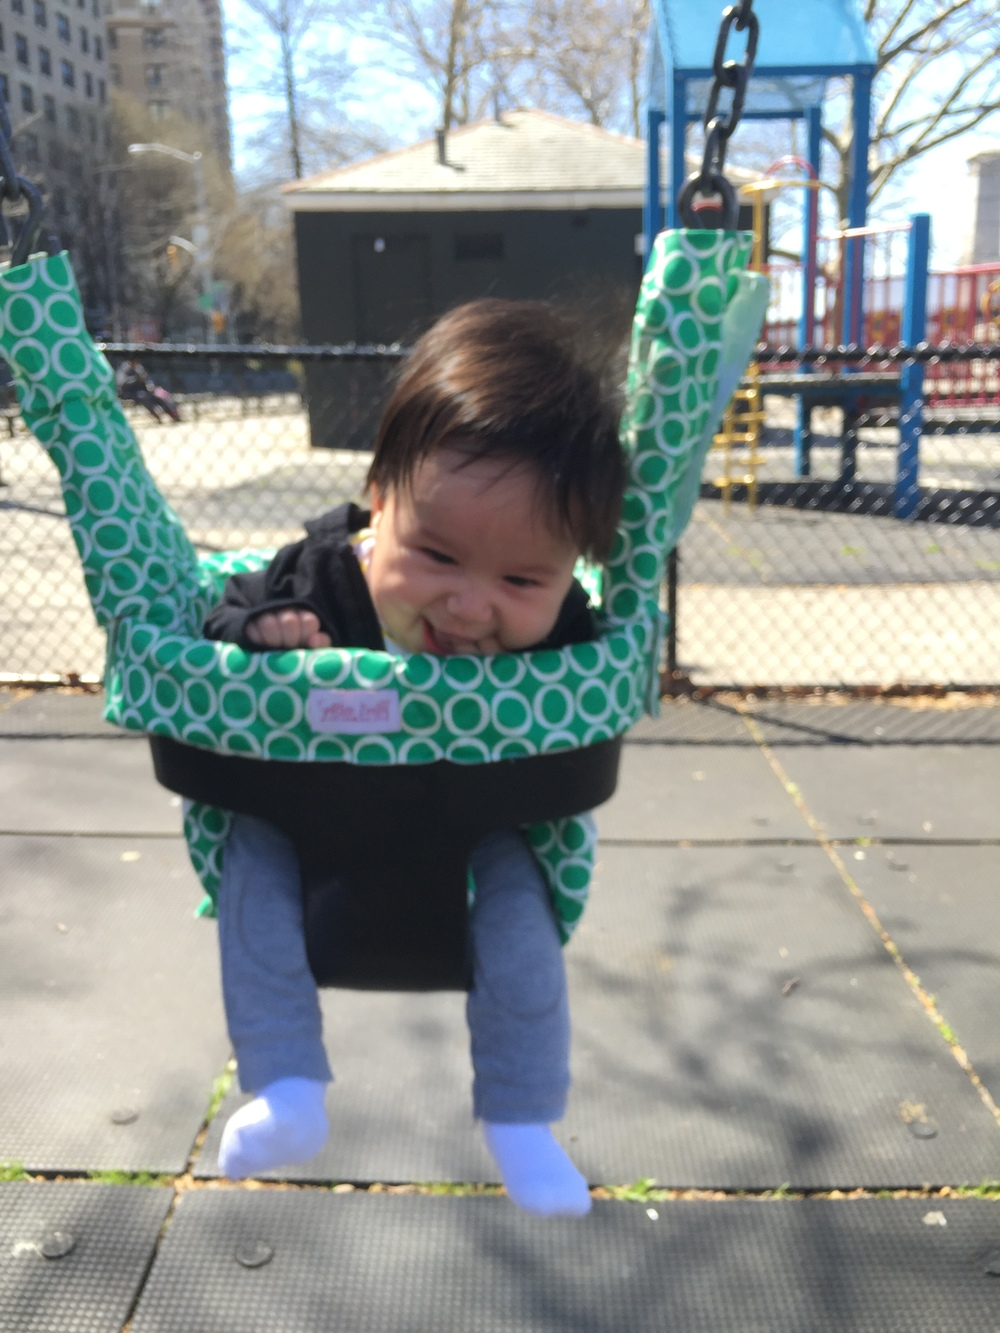 He loves the swings now!